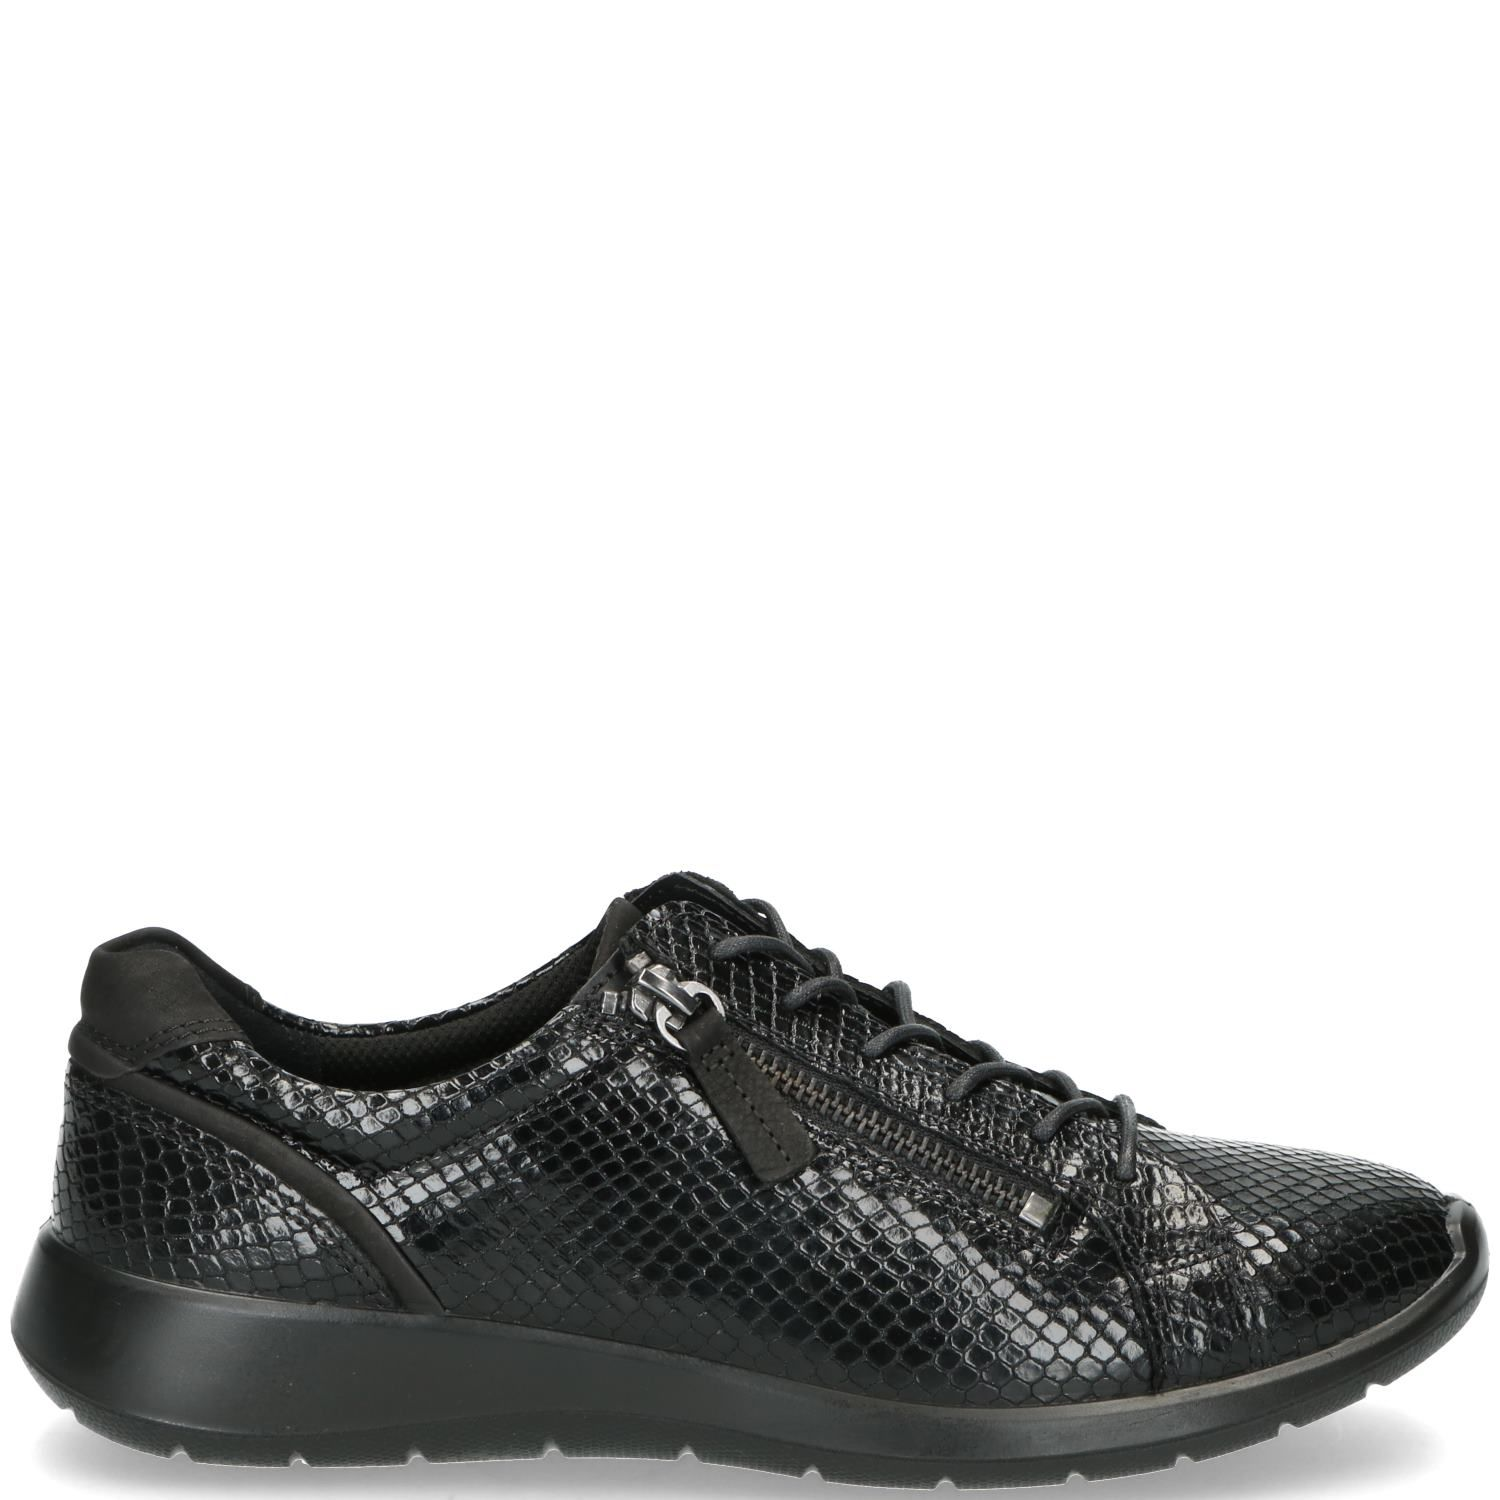 Ecco Soft 5 veterschoen